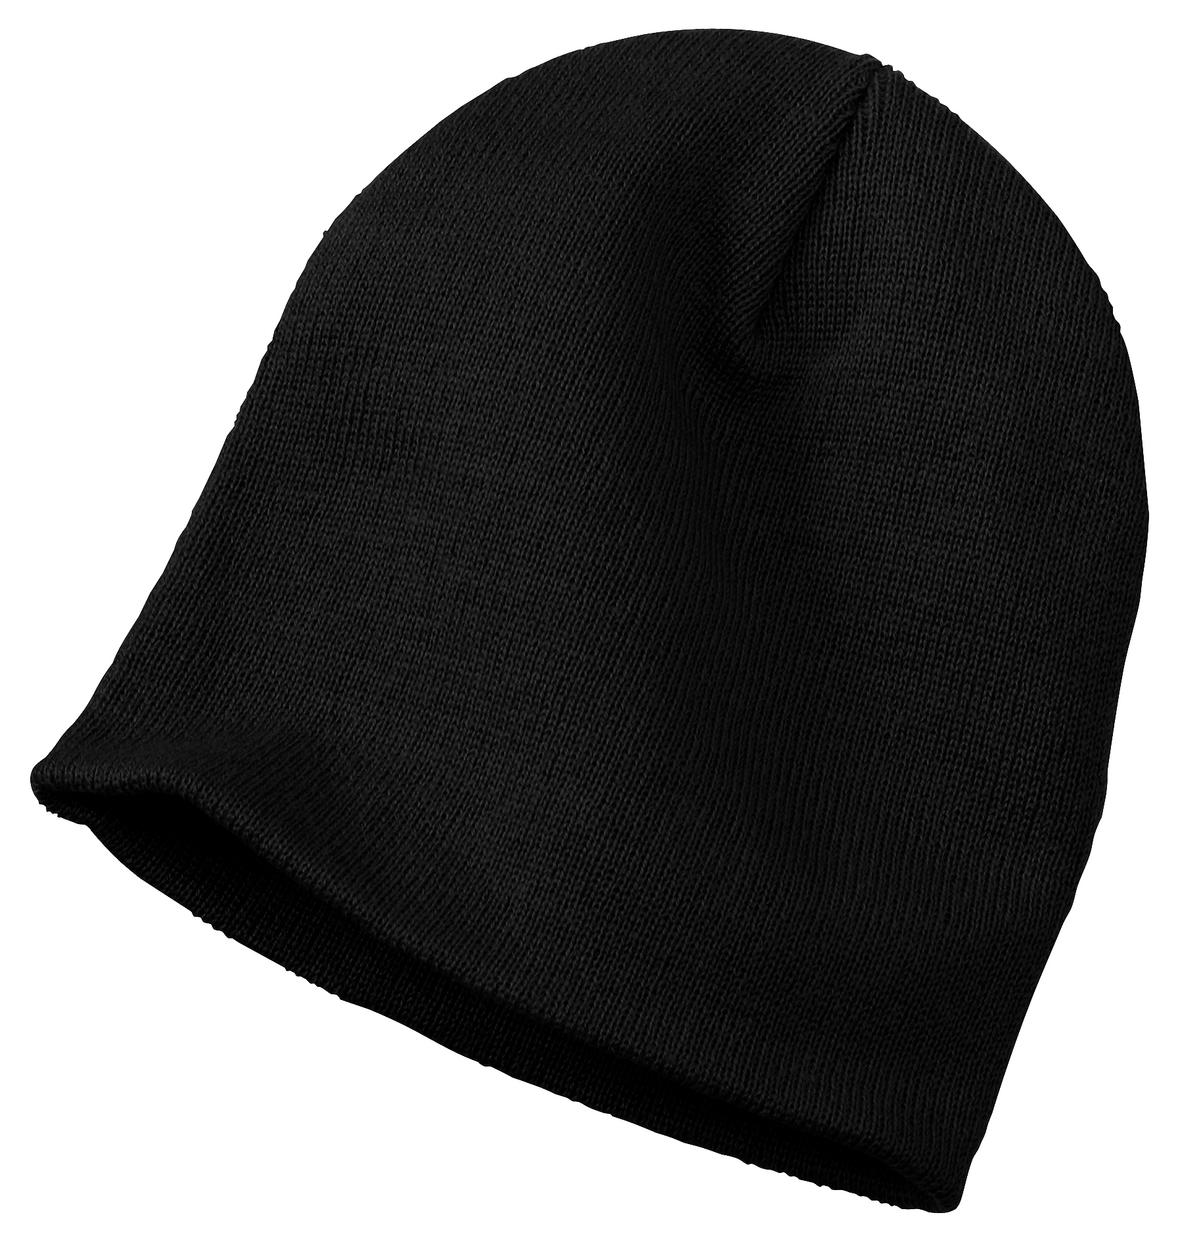 92e9483a695 Buy Port   Company® - Knit Skull Cap. - Port   Company Online at ...